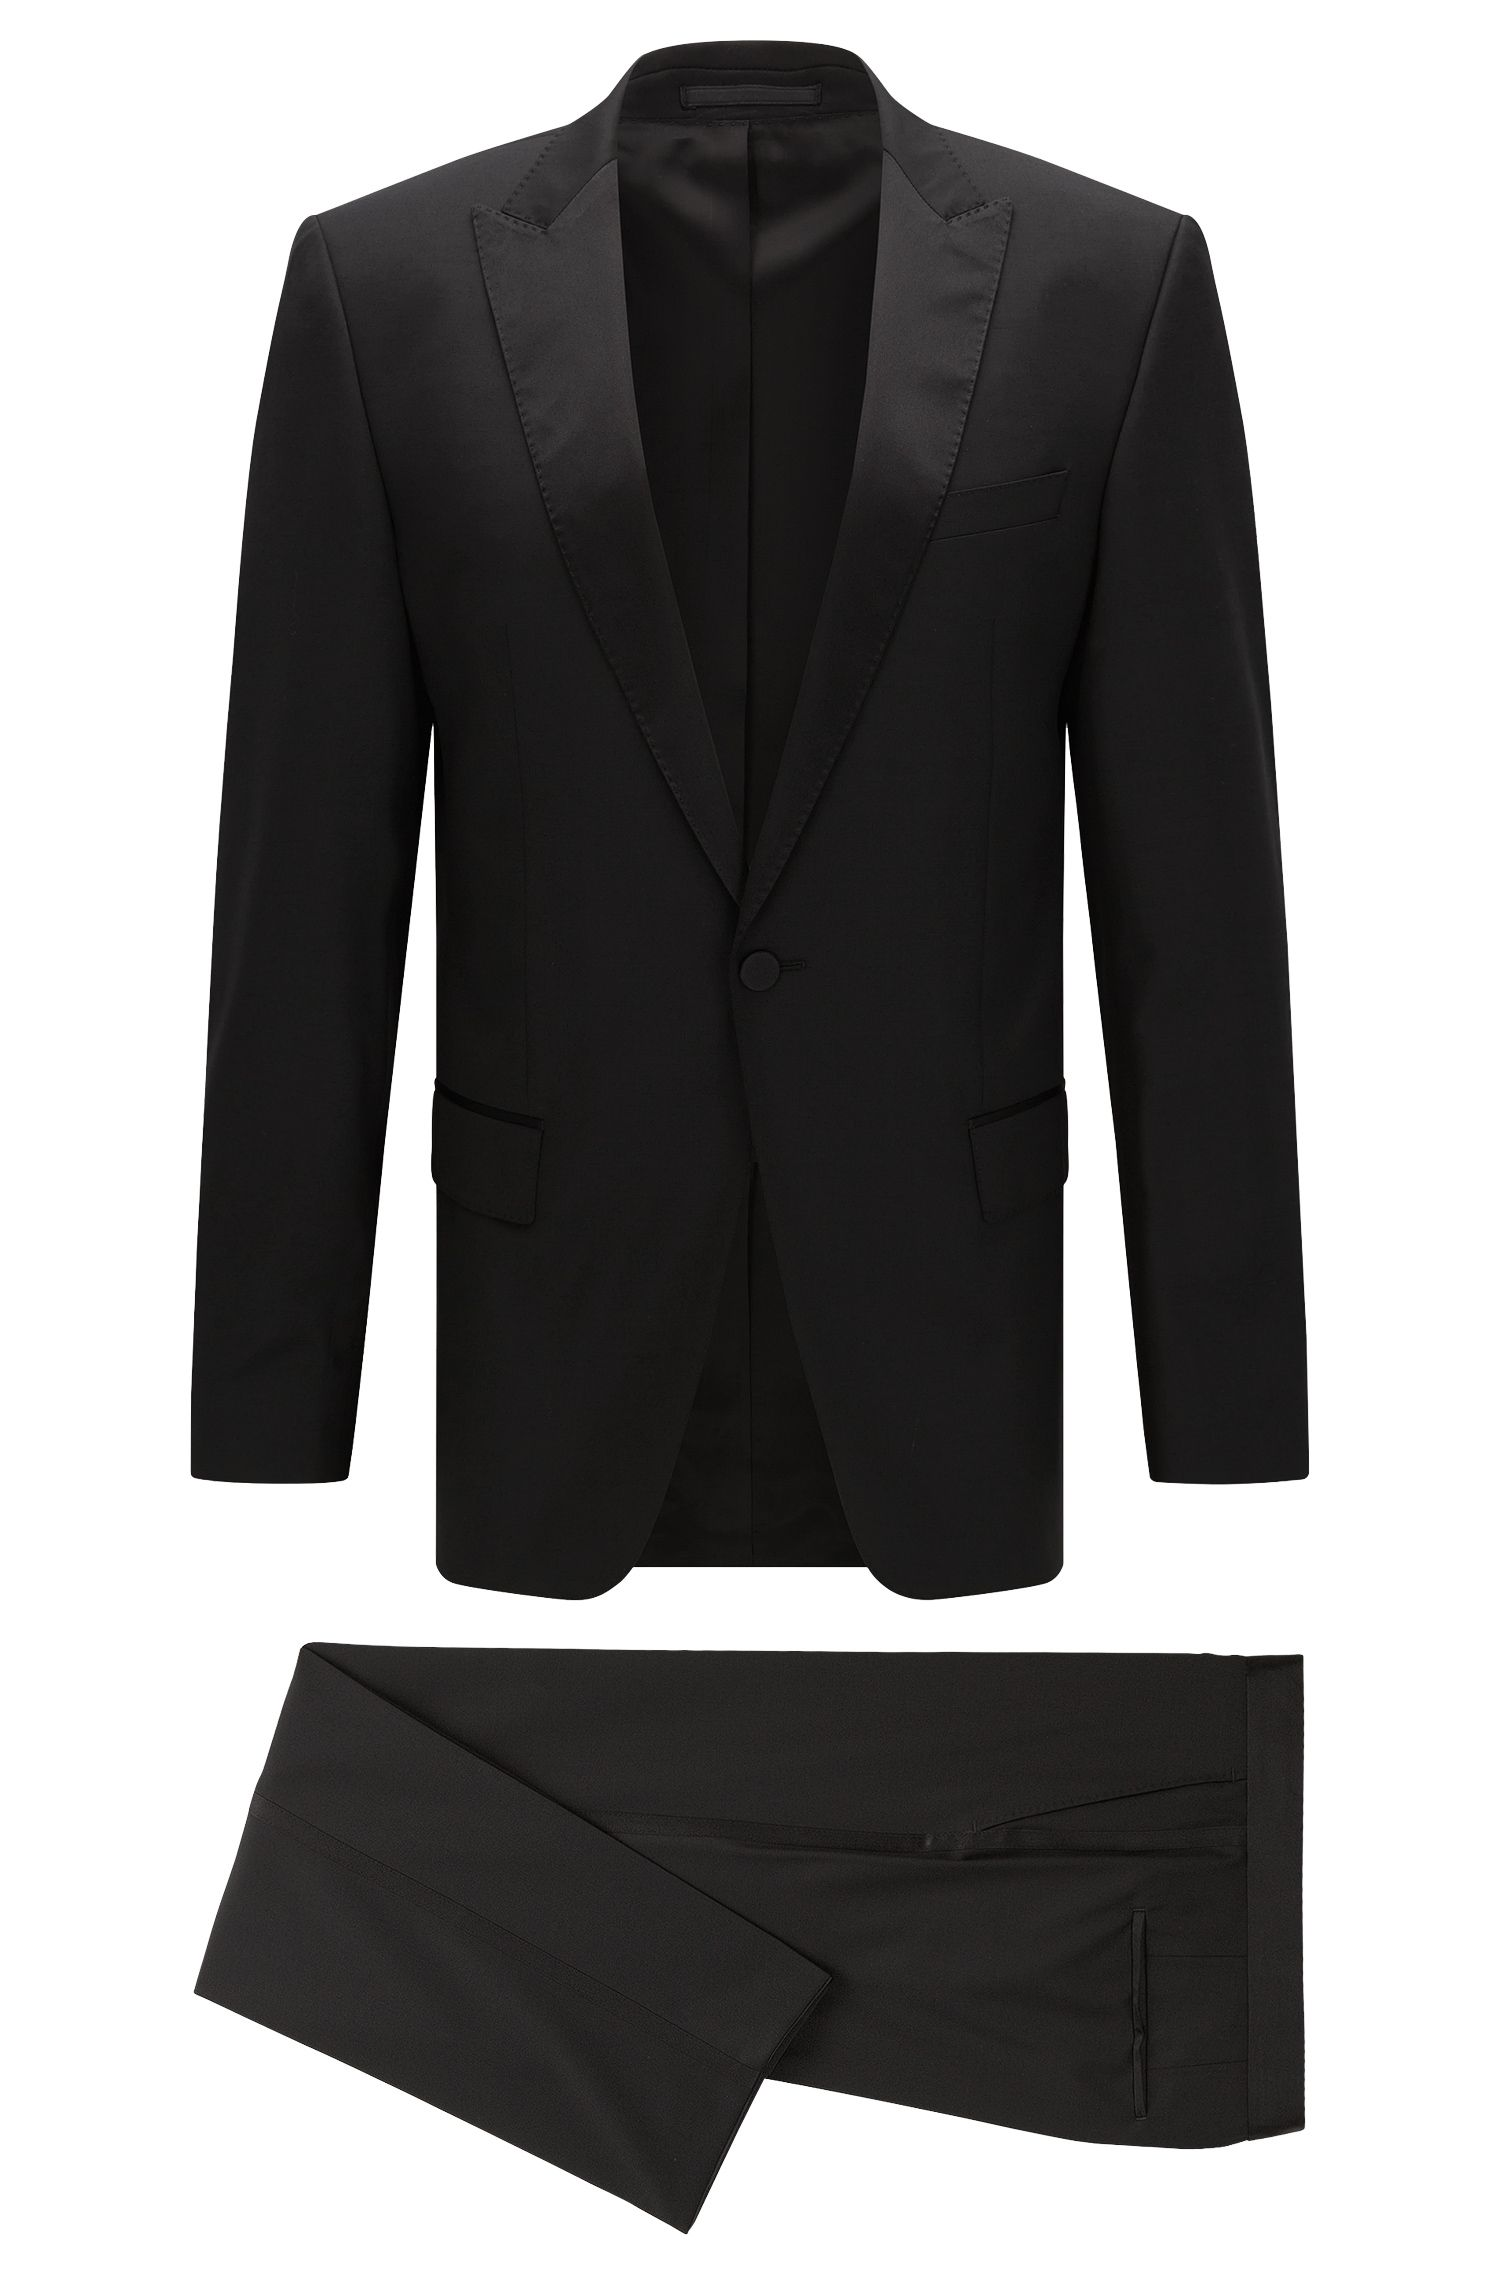 'Housten/Gloriuos' | Slim Fit, Virgin Wool Tuxedo